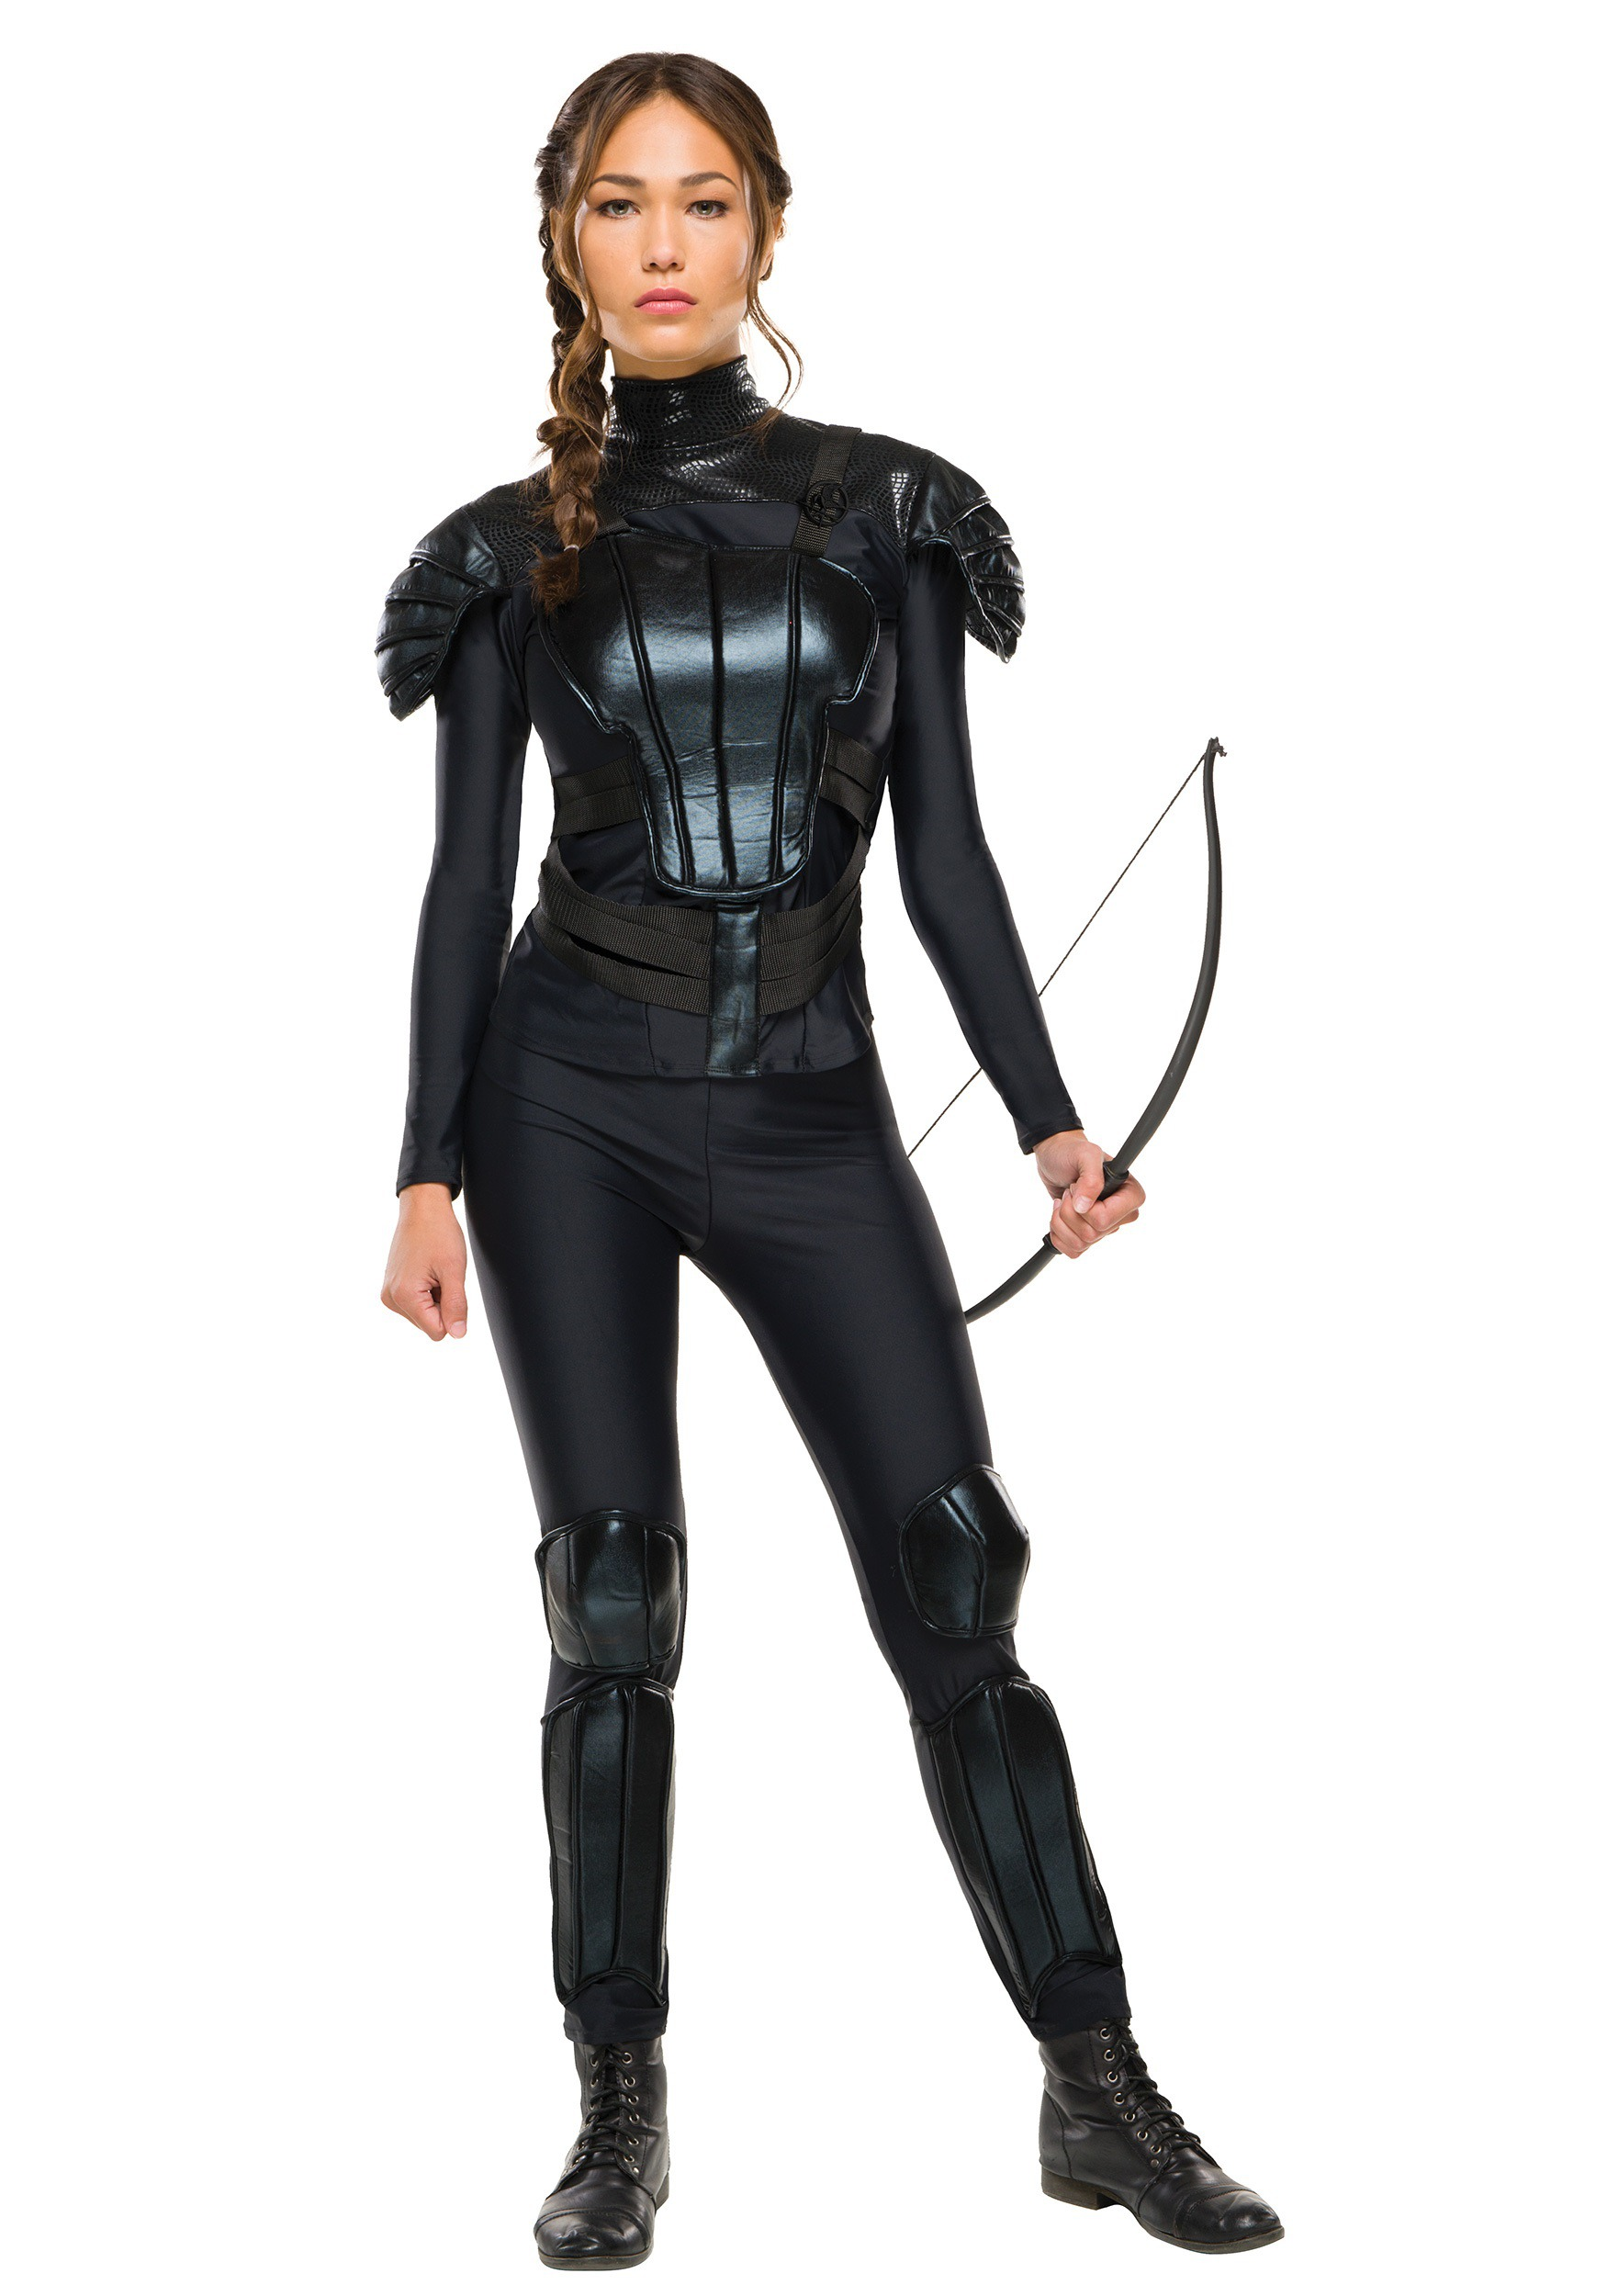 Image result for katniss everdeen costume